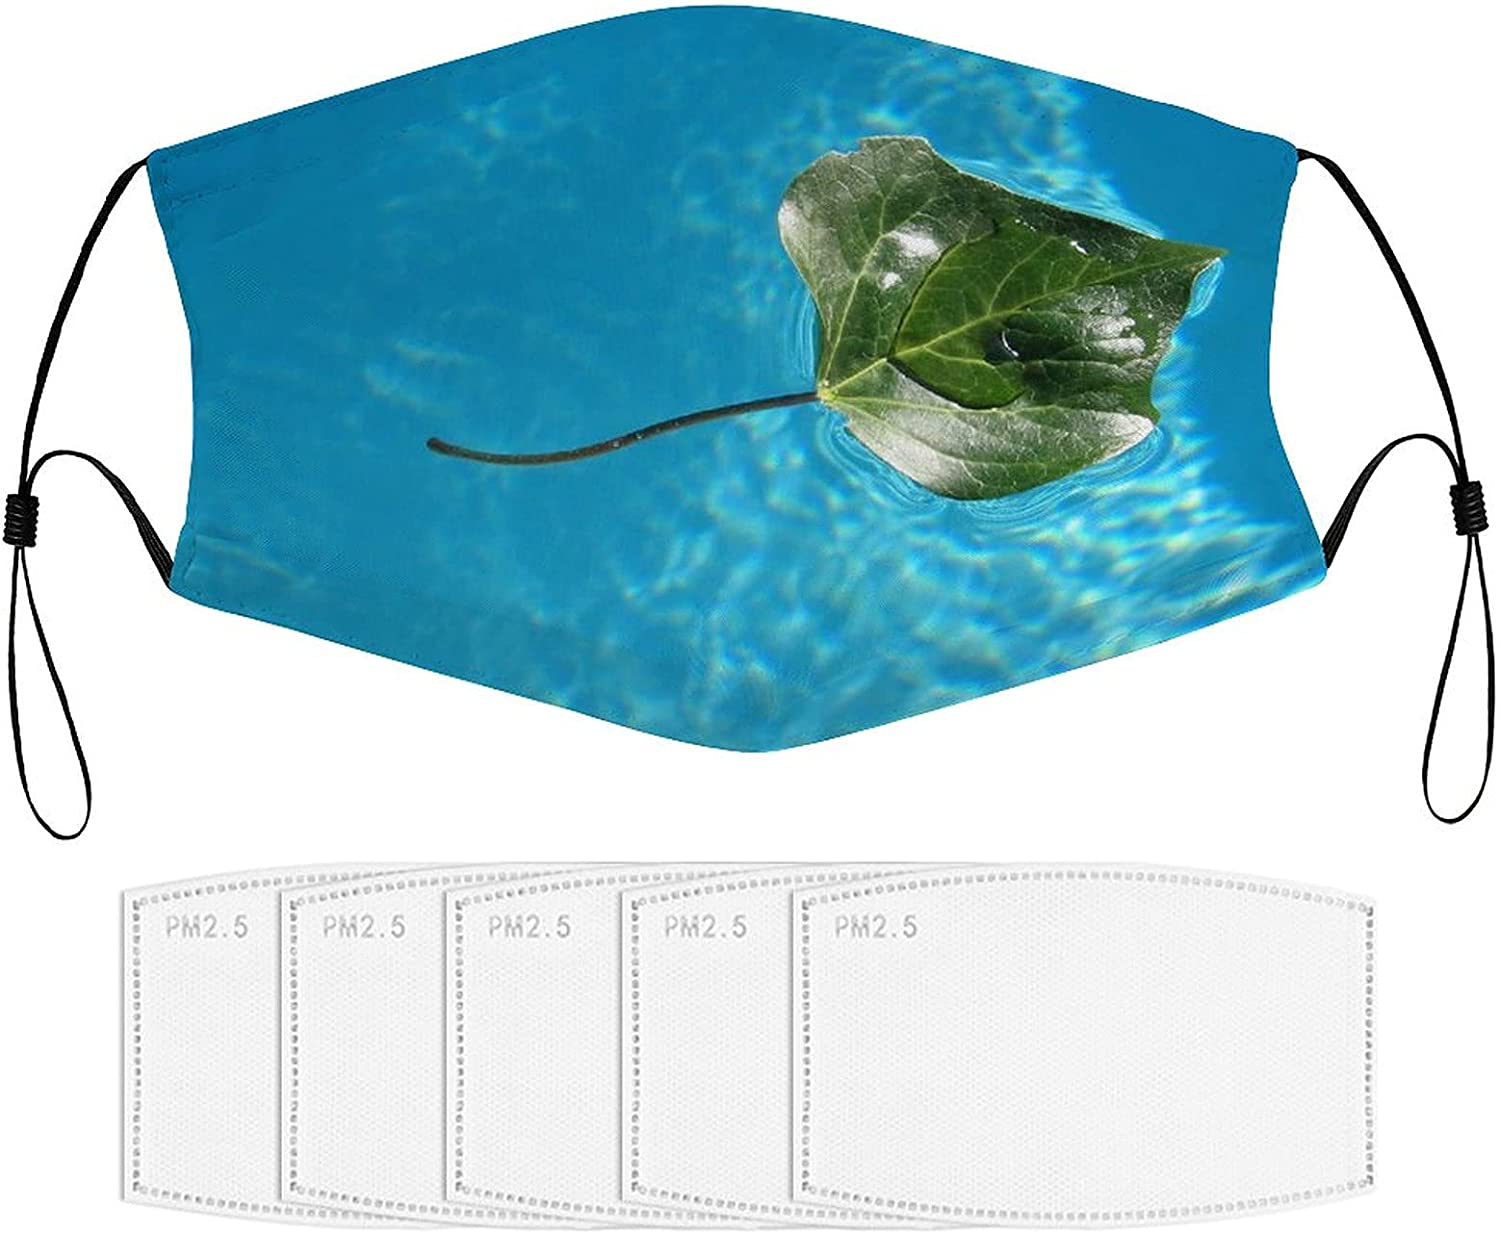 ZONFIND Children's Mask with Filters Minneapolis Mall Pool Rays Max 43% OFF Ska Stingray Leaf